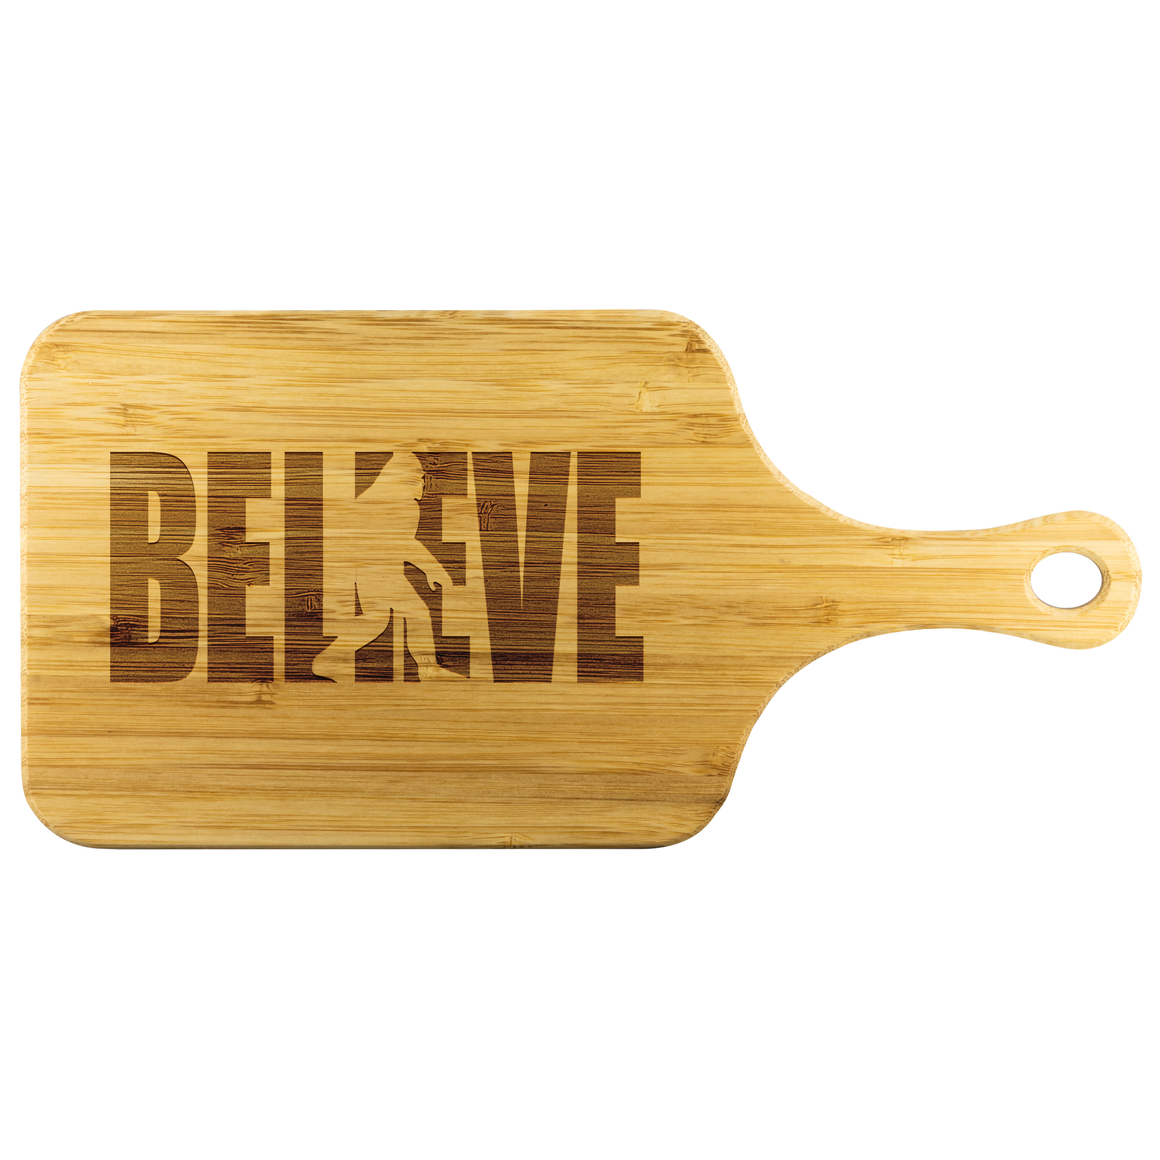 Believe Cutting Board